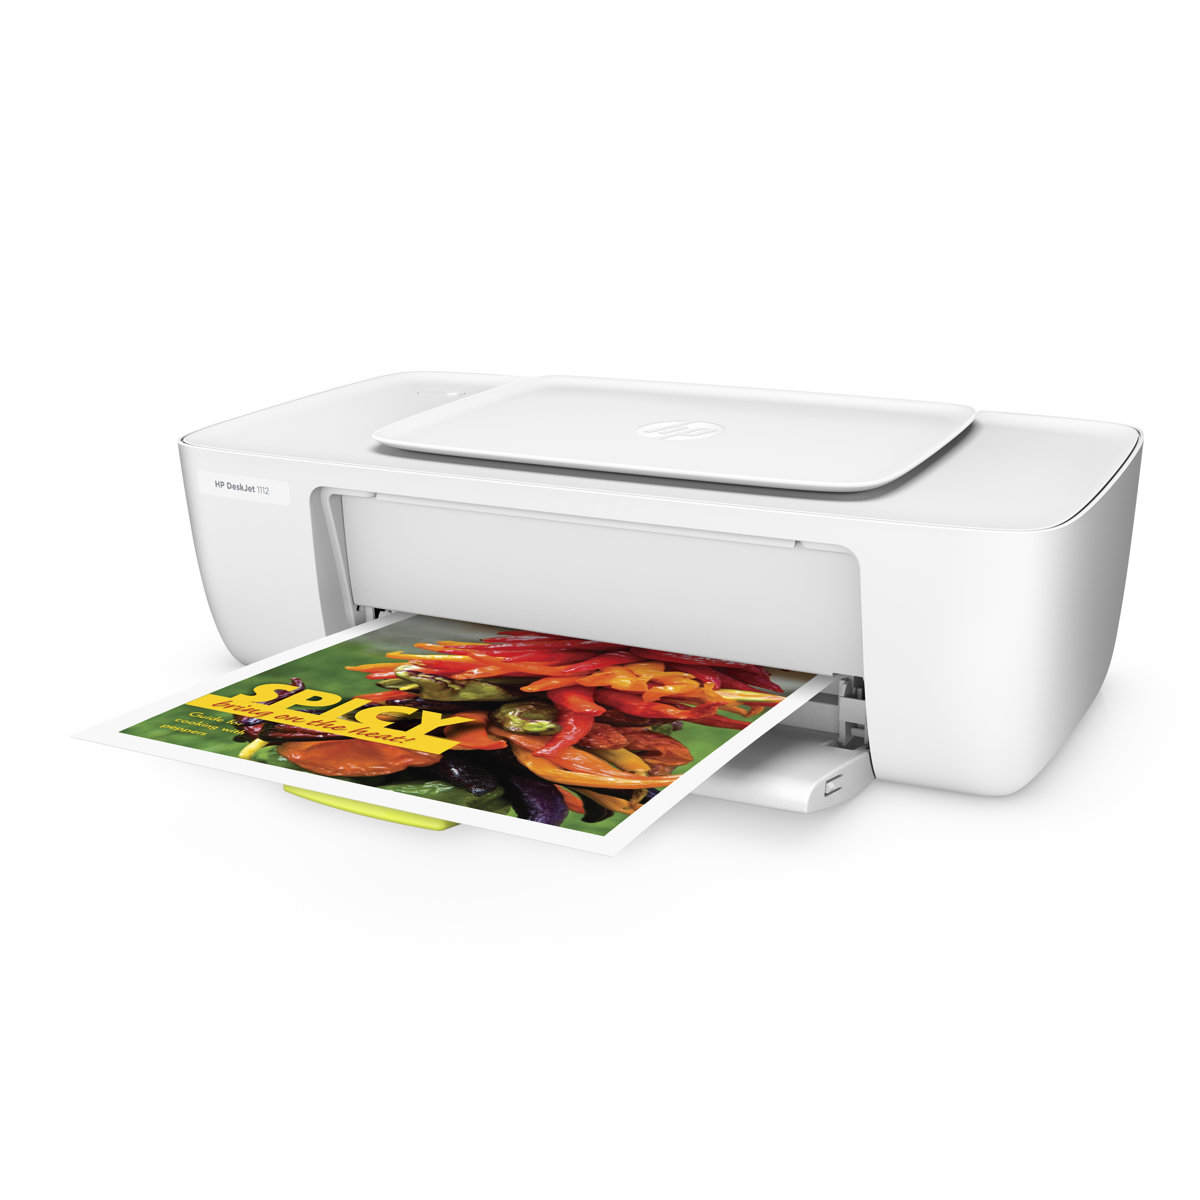 Office depot color printing costs - Office Depot Color Printing Costs 6